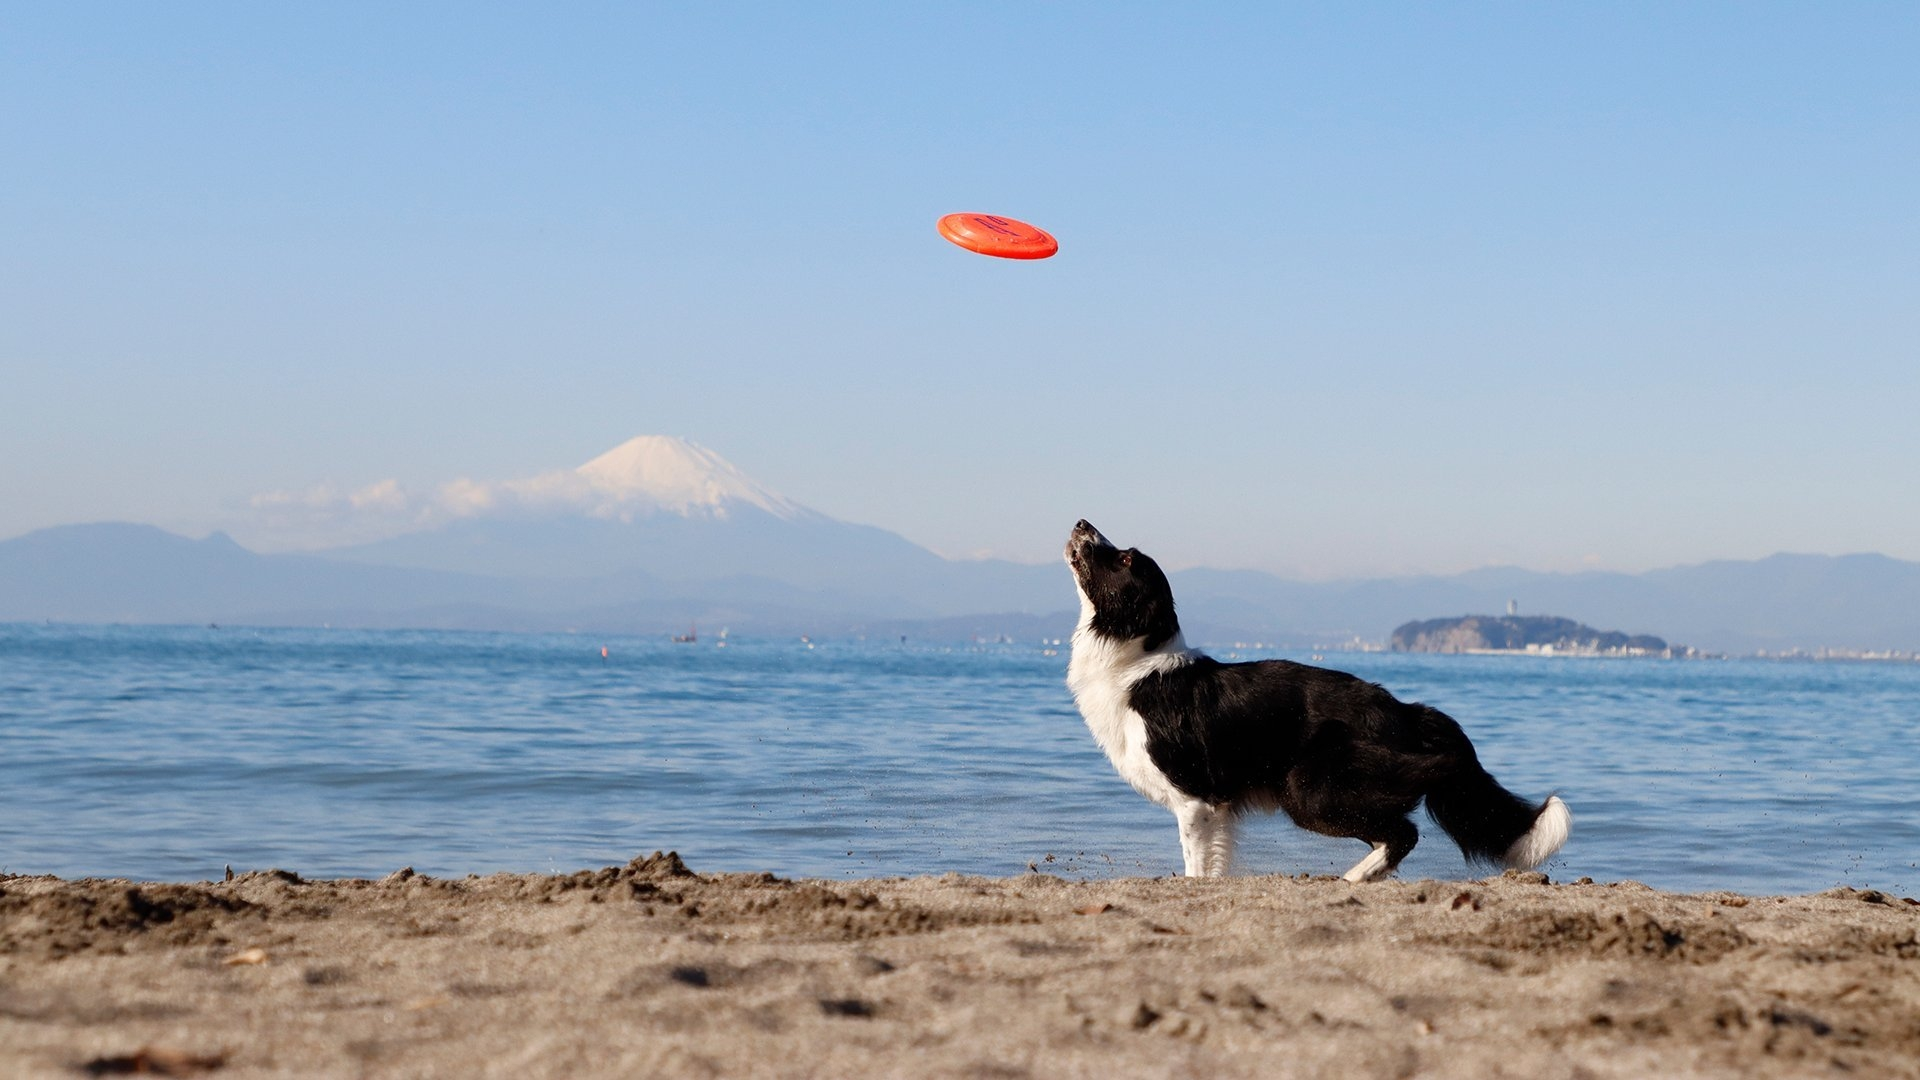 Dog about to jump for an orange Frisbee